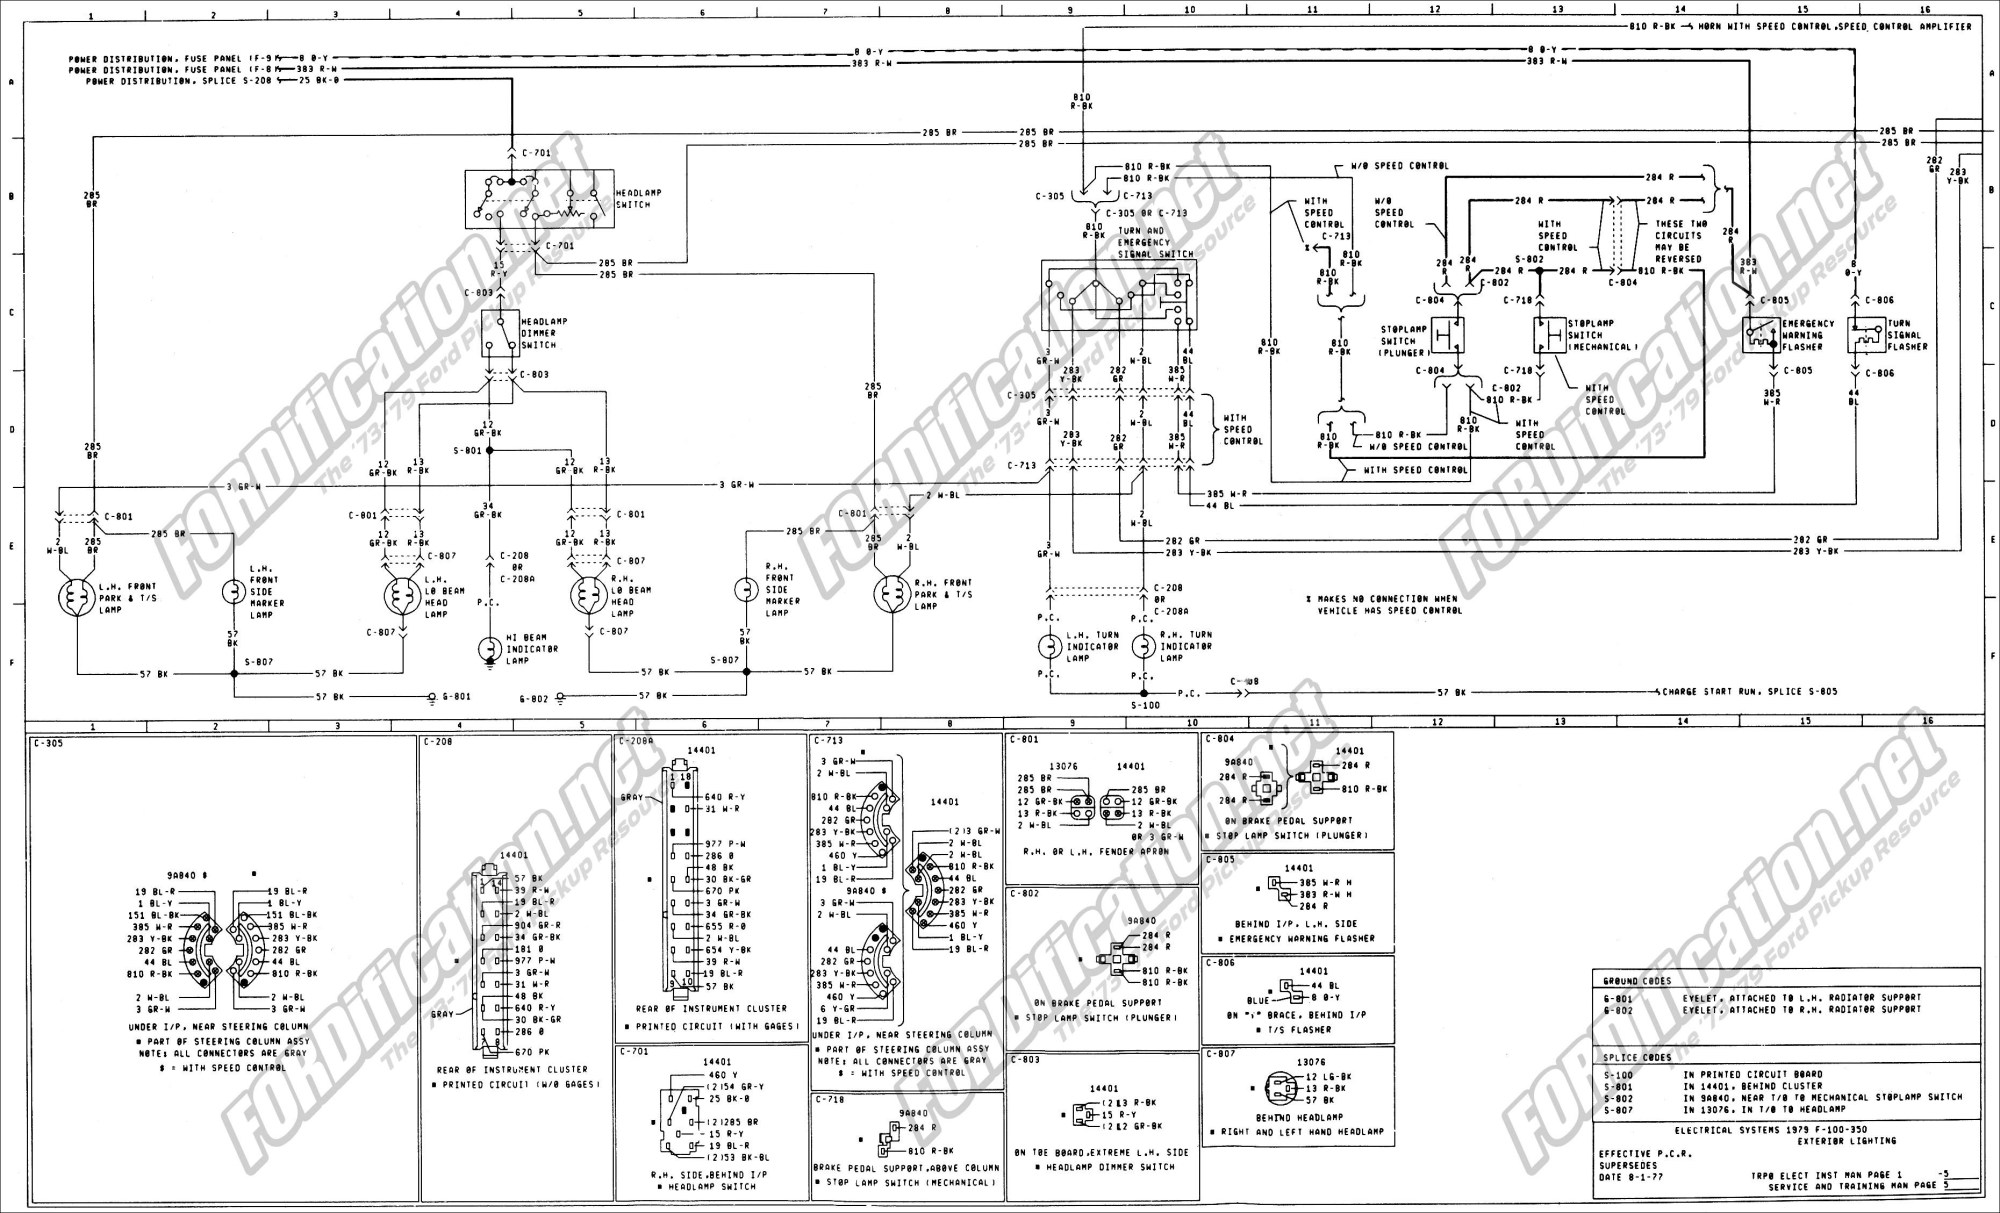 hight resolution of 1977 ford 351m f150 wiring diagram home wiring diagram 1977 ford f150 starter solenoid wiring diagram 1977 f150 wiring diagram